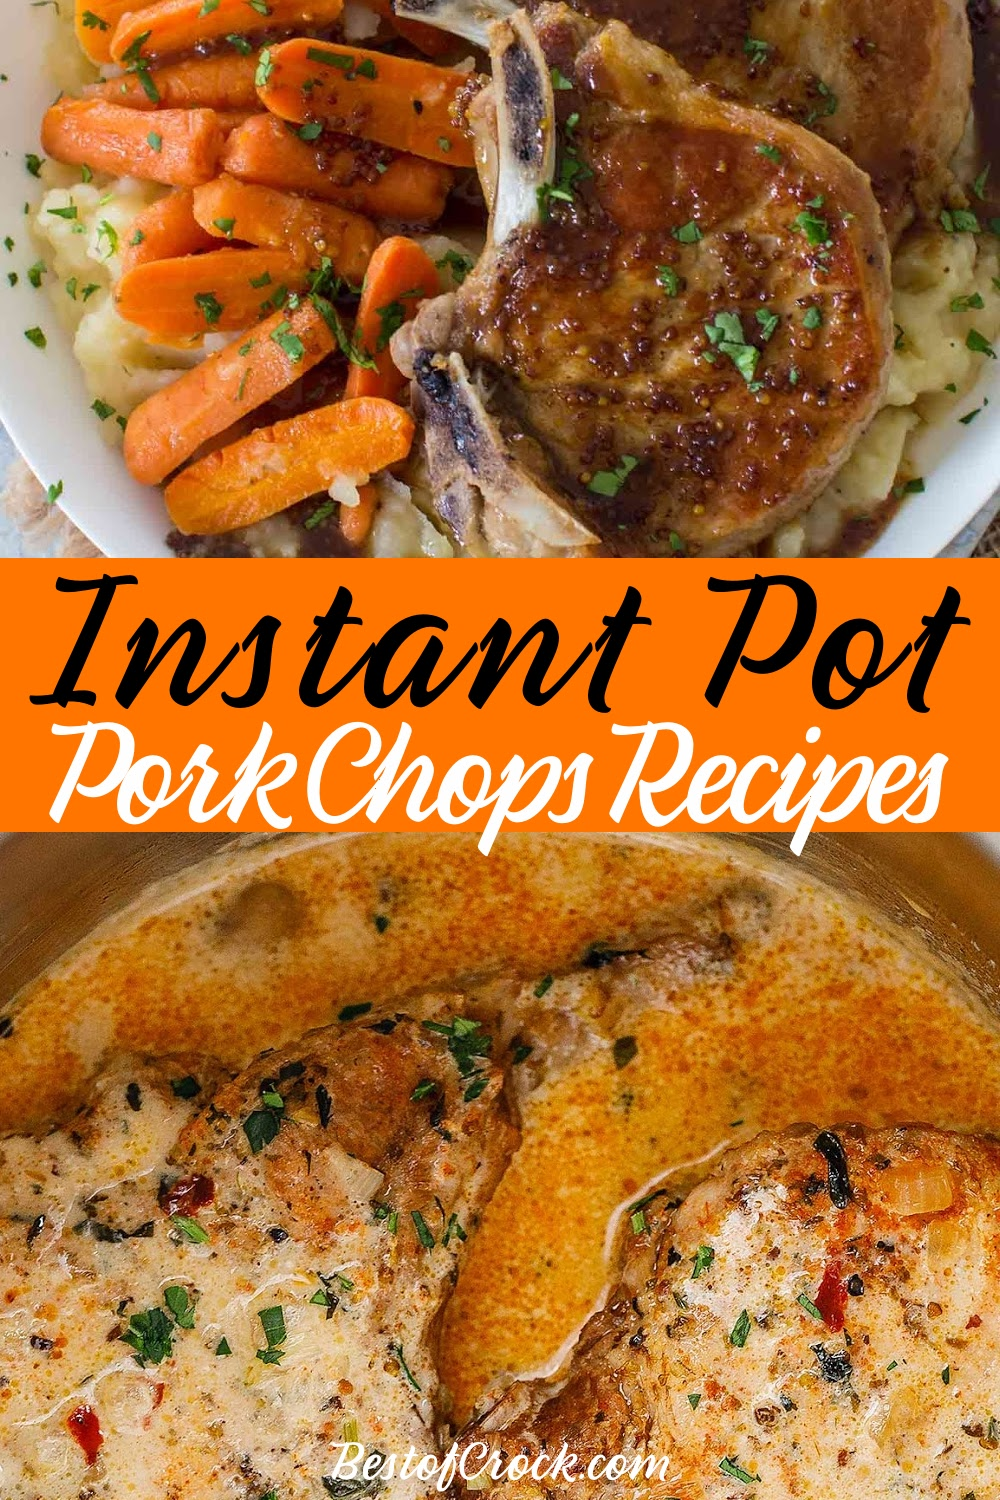 Instant Pot pork chops recipes are easy to make and are perfect for meal planning for an easy family dinner or a dinner for two meals on date night. Instant Pot Pork Recipes   Instant Pot Dinner Recipes   Instant Pot Pork Chops with Mushroom Soup   Instant Pot Pork Chops Bone-In   Instant Pot Pork Chops and Rice   Healthy Instant Pot Pork Chops   Pressure Cooker BBQ Pork Chops #instantpot #dinnerrecipes via @bestofcrock